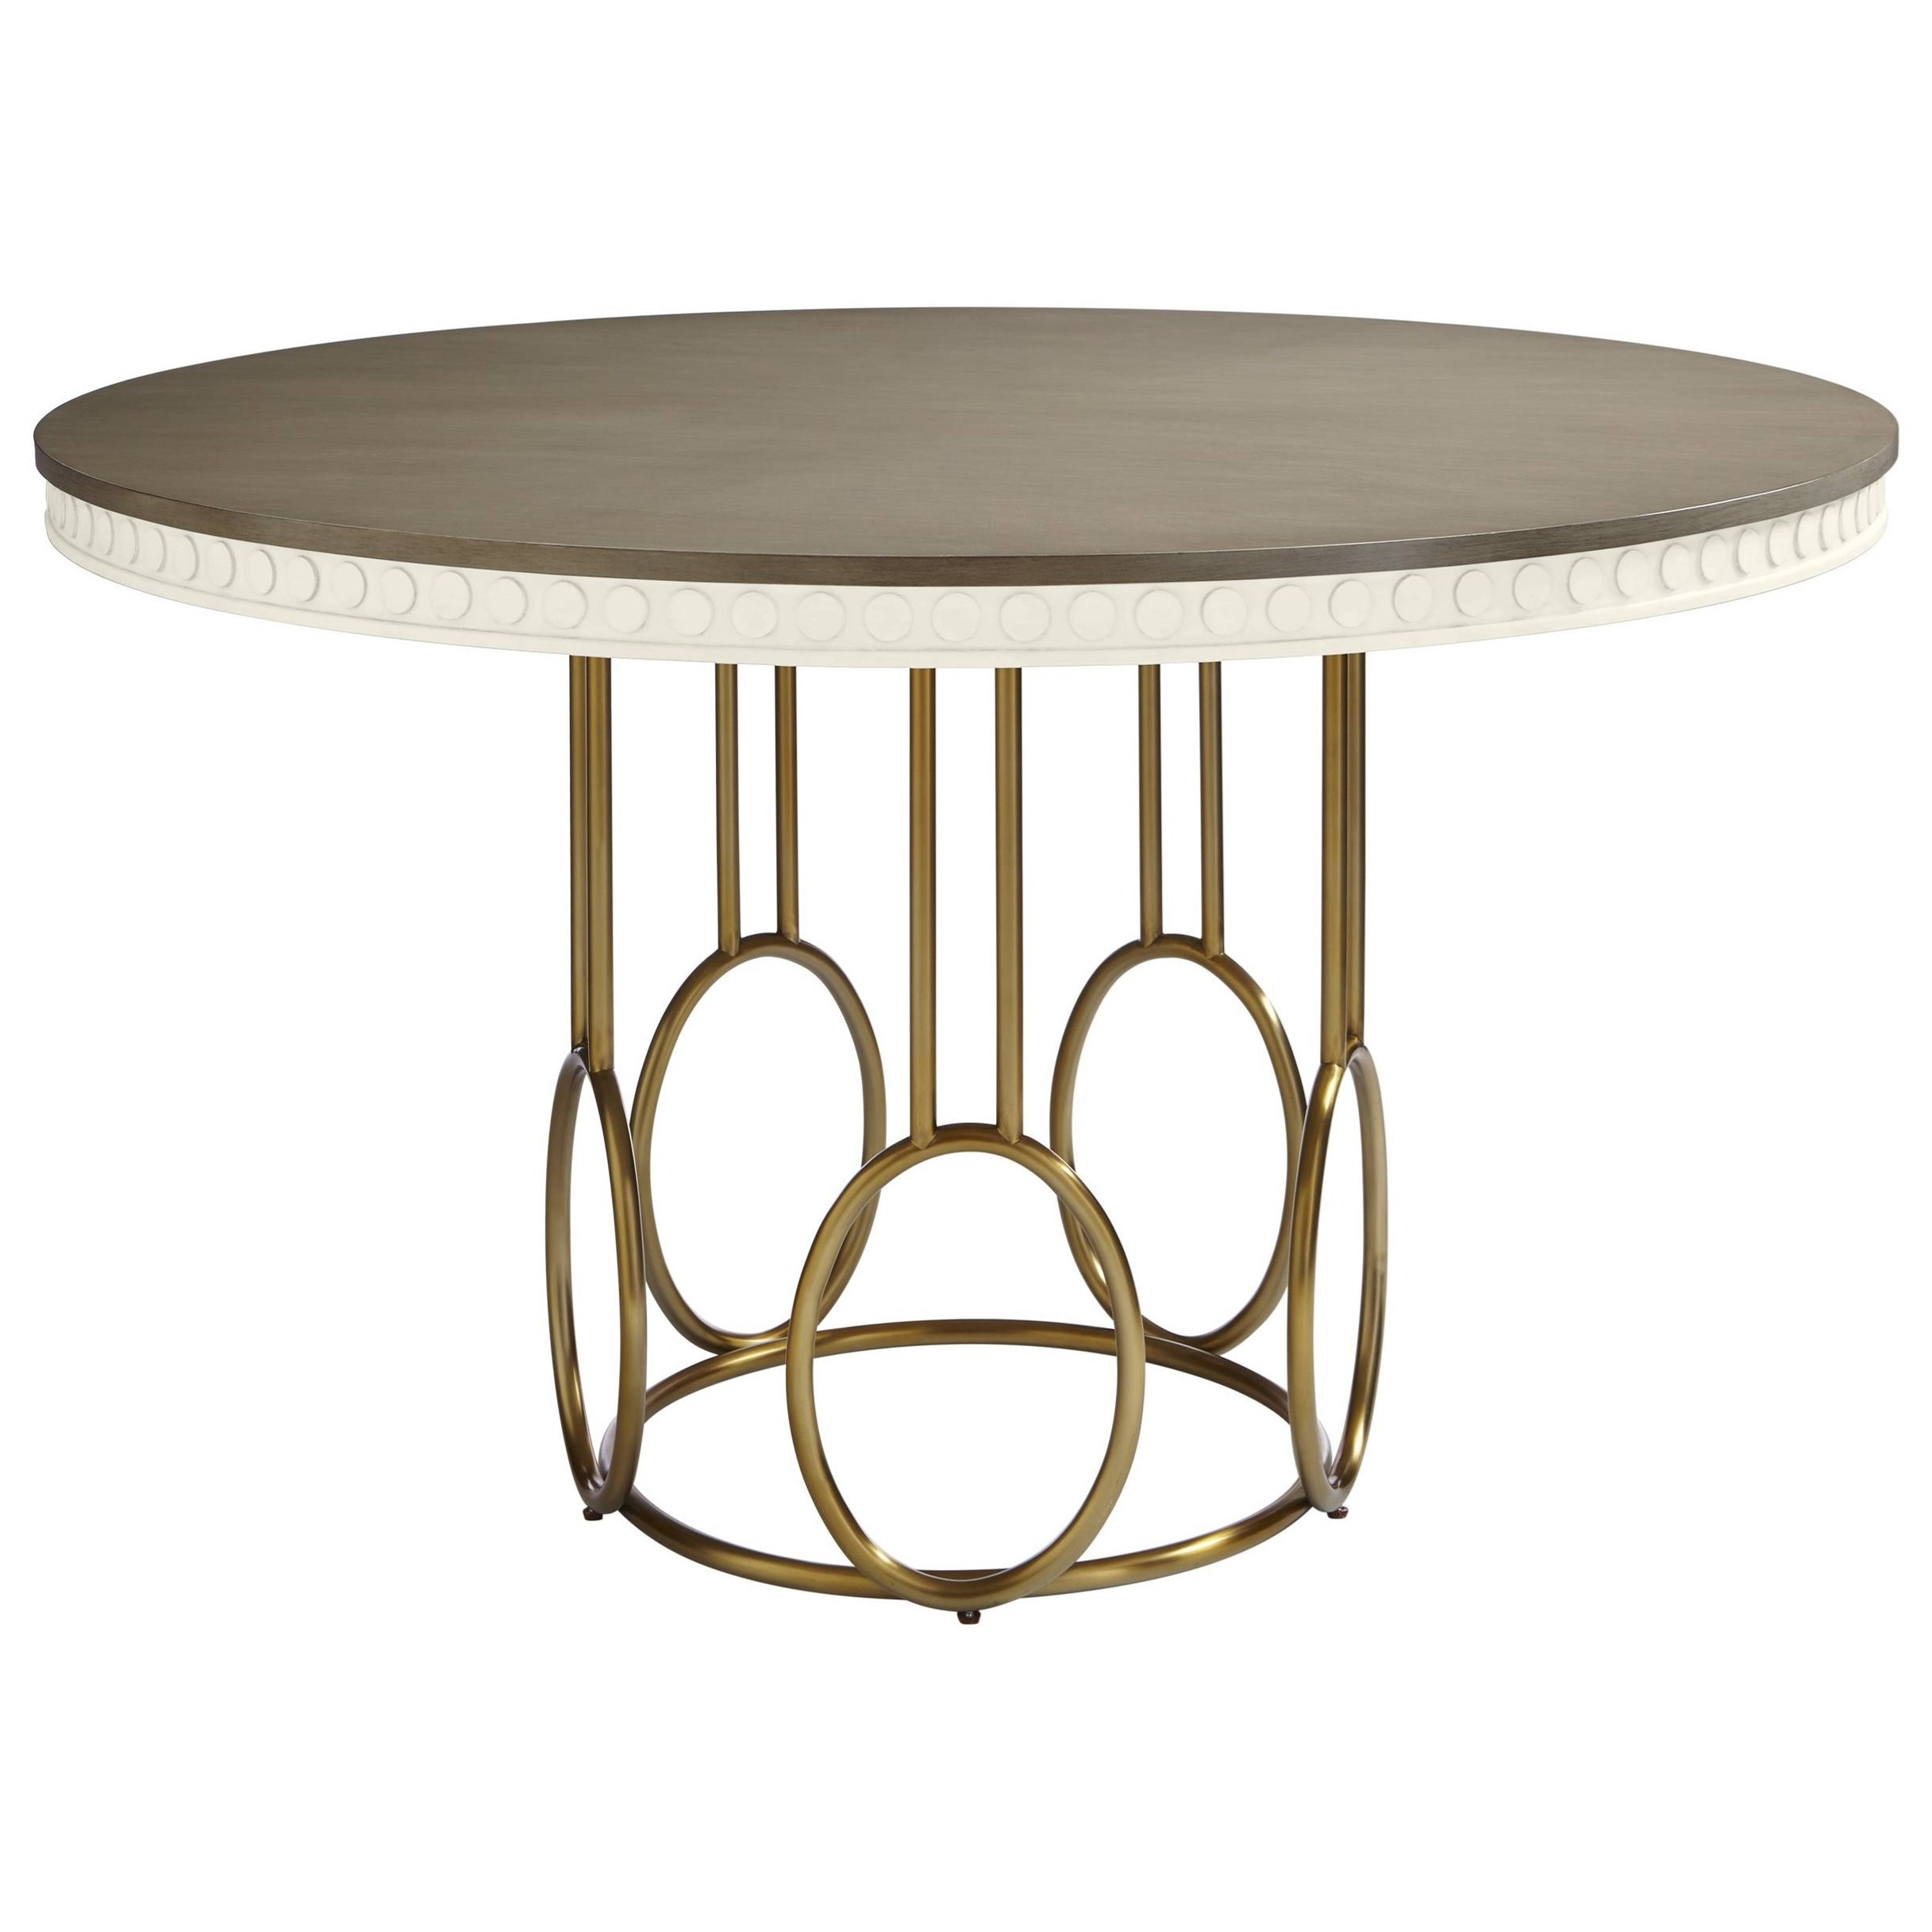 Stanley Furniture Coastal Living Oasis Venice Beach Round Dining Table - Item Number: 527-21-30